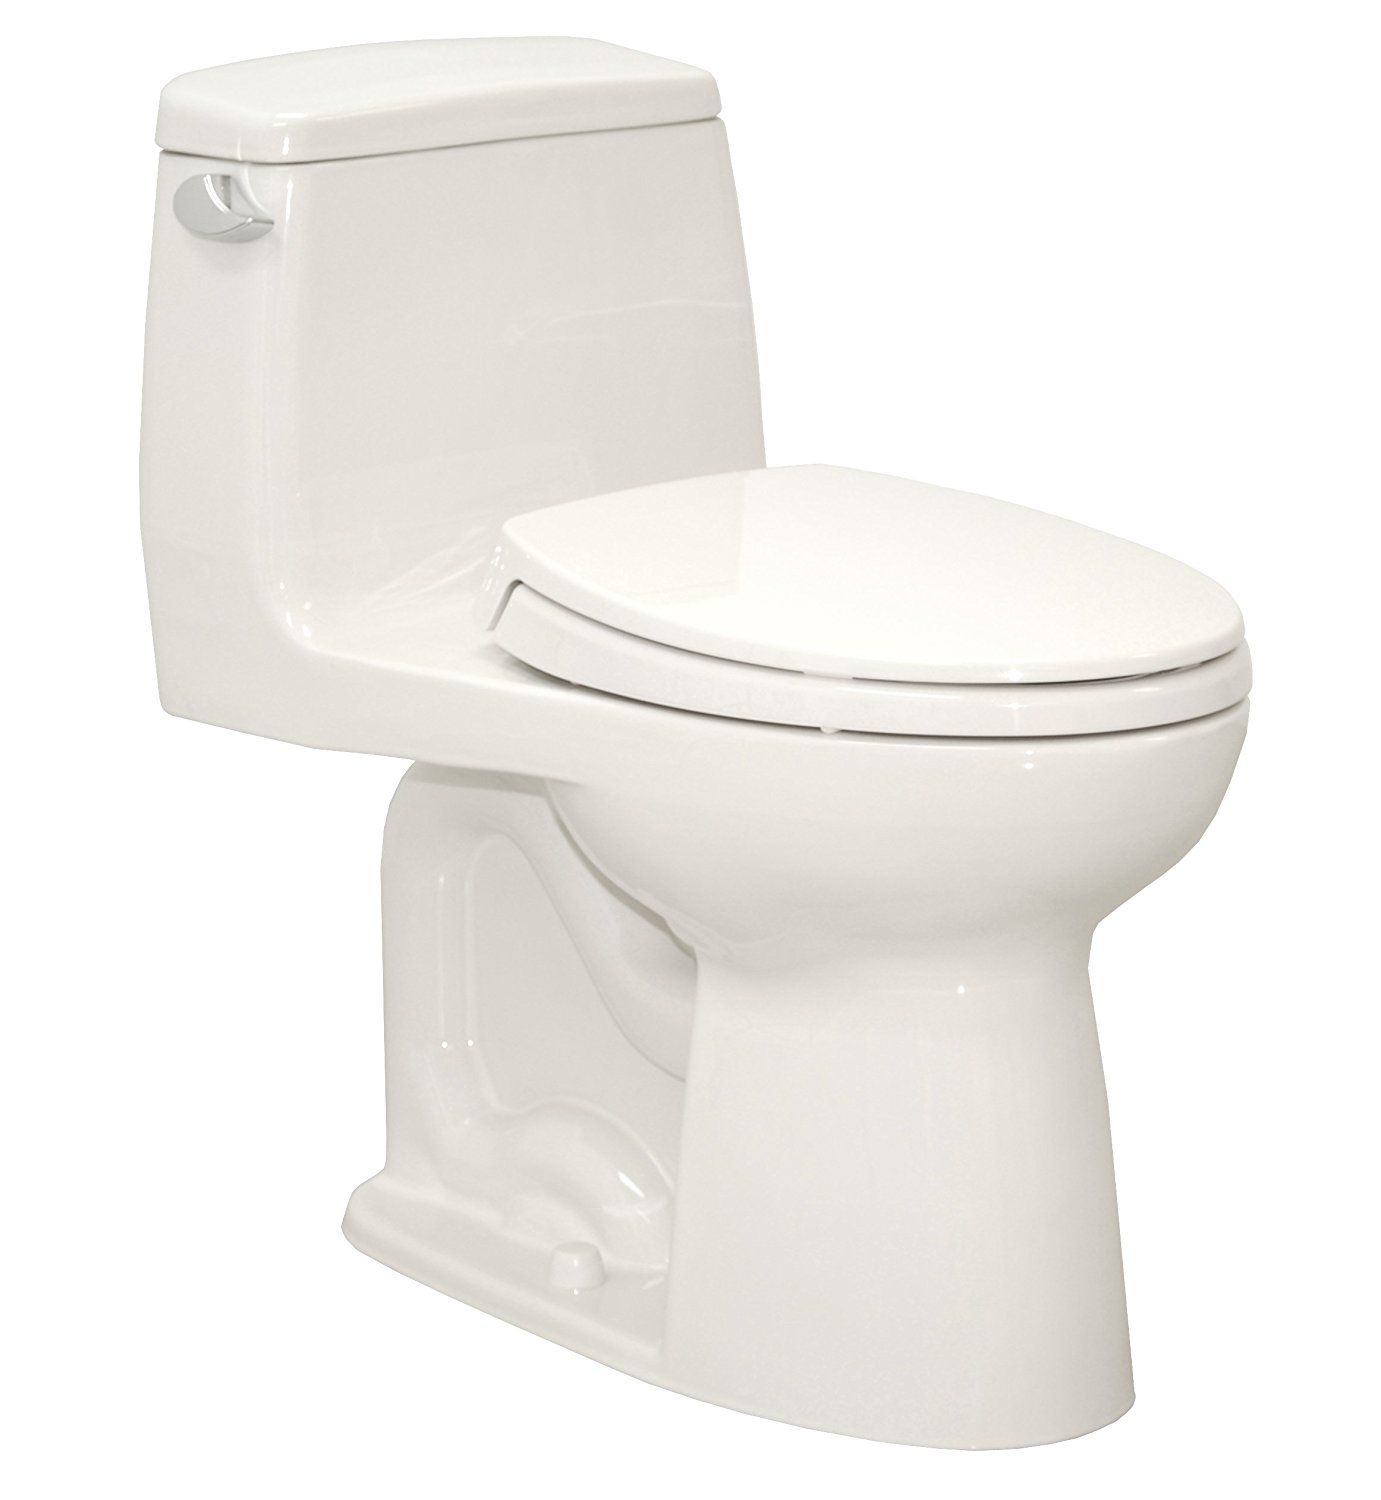 How to Install Handicap Toilets for Accessible Home Bathrooms